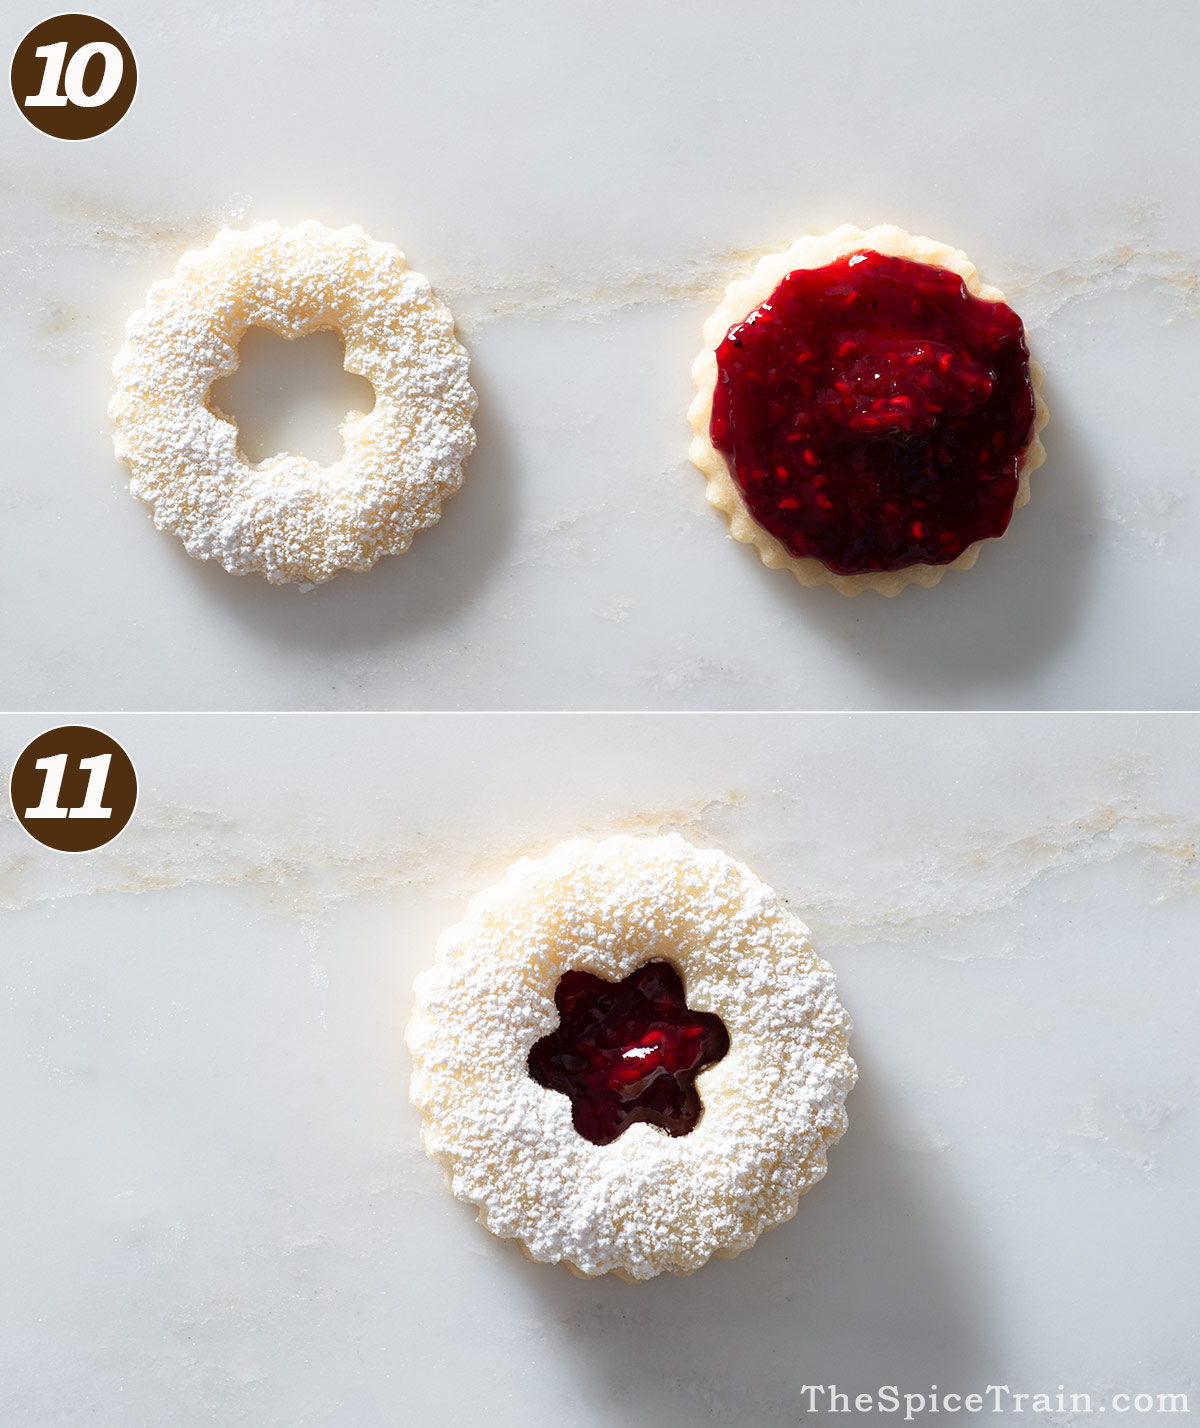 A Linzer cookie with raspberry jam before and after assembly.